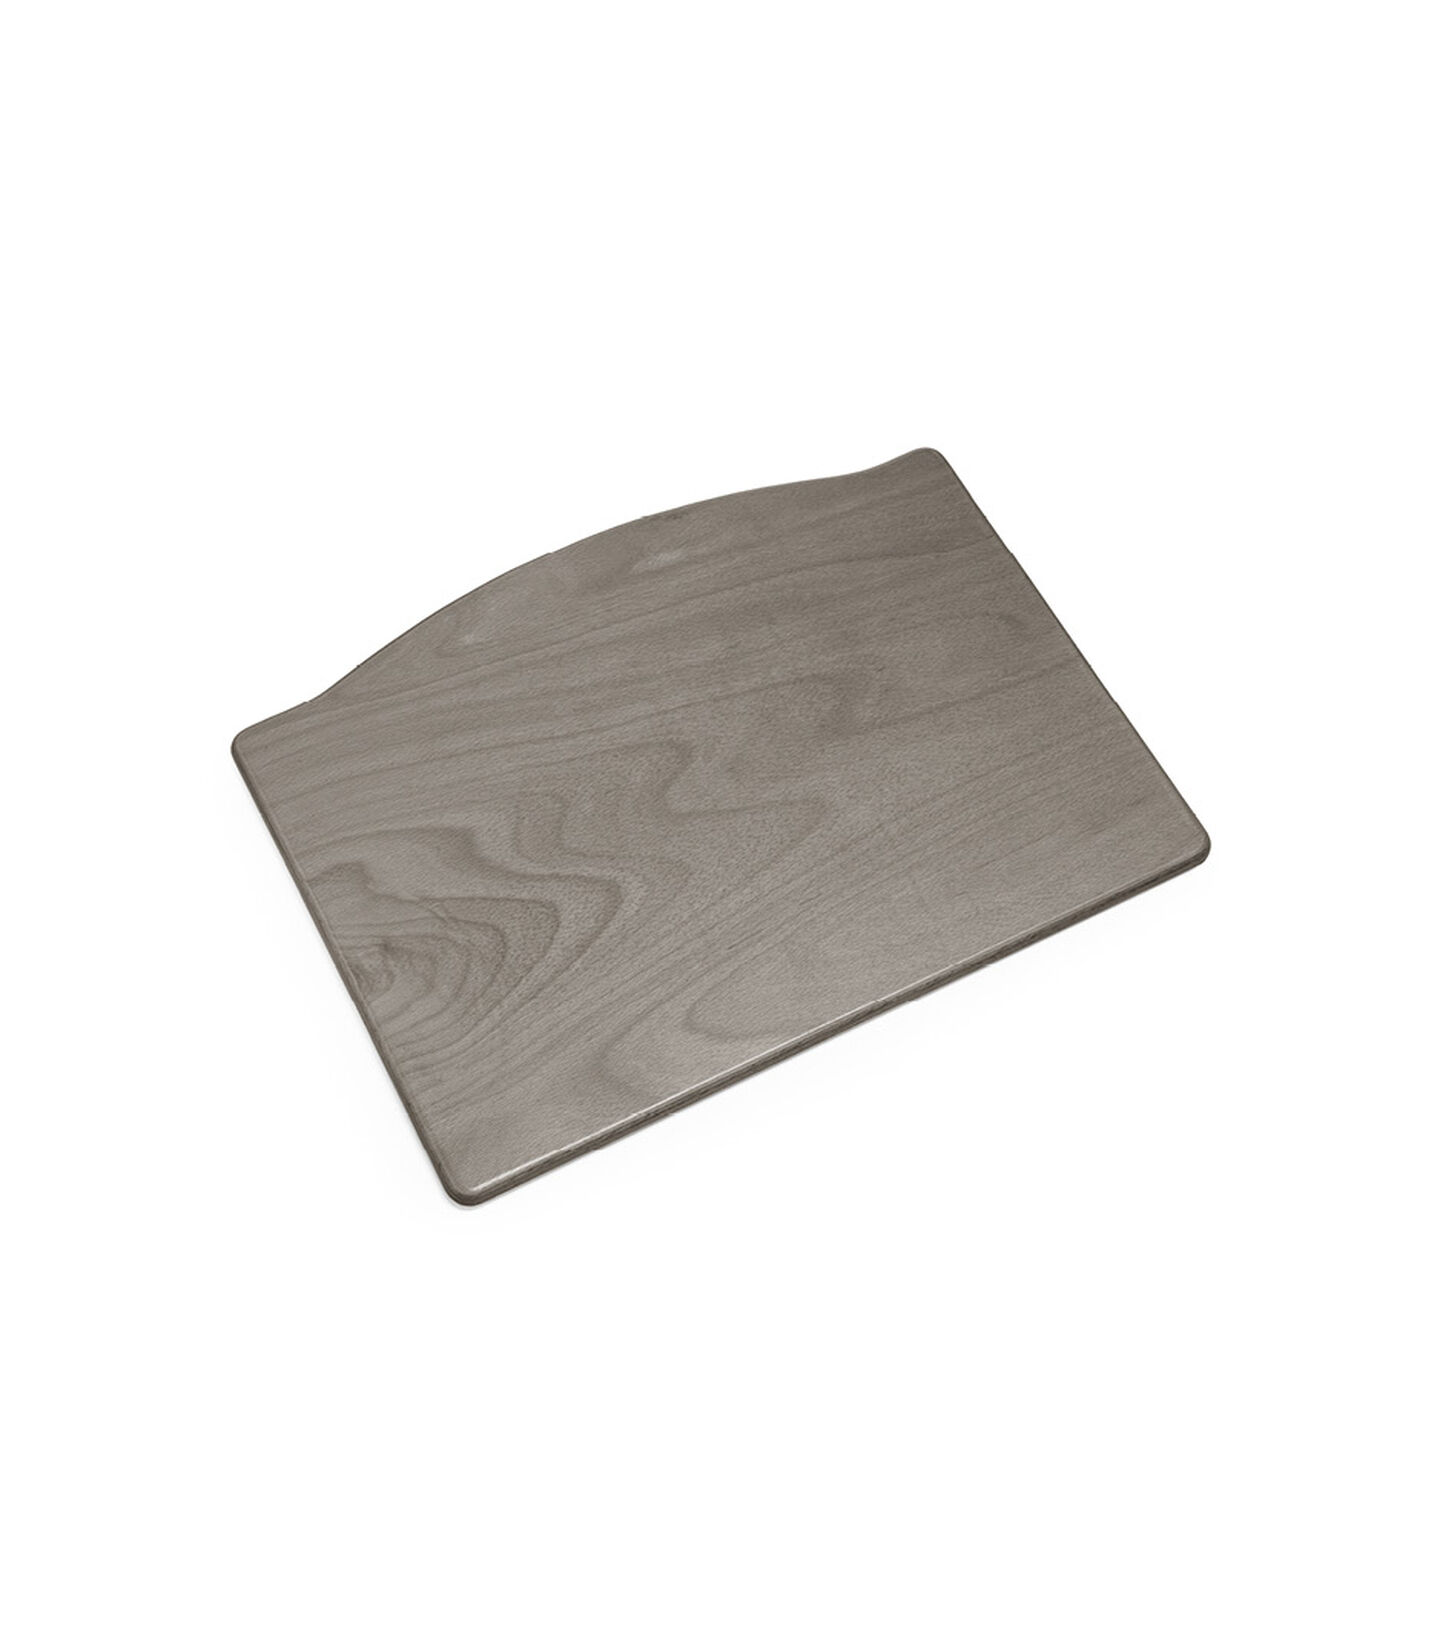 108929 Tripp Trapp Foot plate Hazy Grey (Spare part). view 1